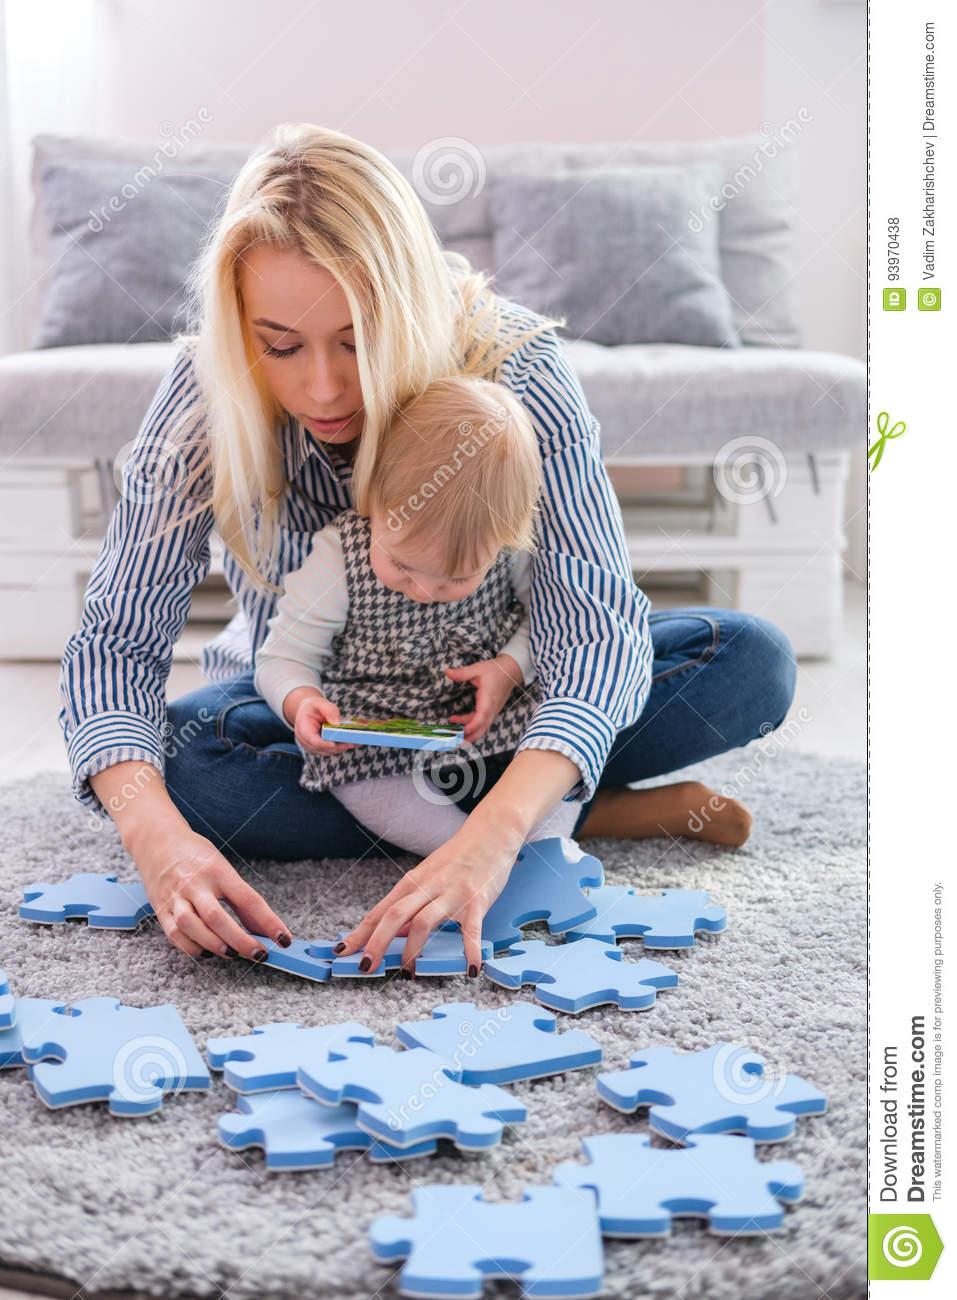 Beautiful Woman And Her Baby Playing With Puzzle Pieces While Sitting On A Carpet In The Living